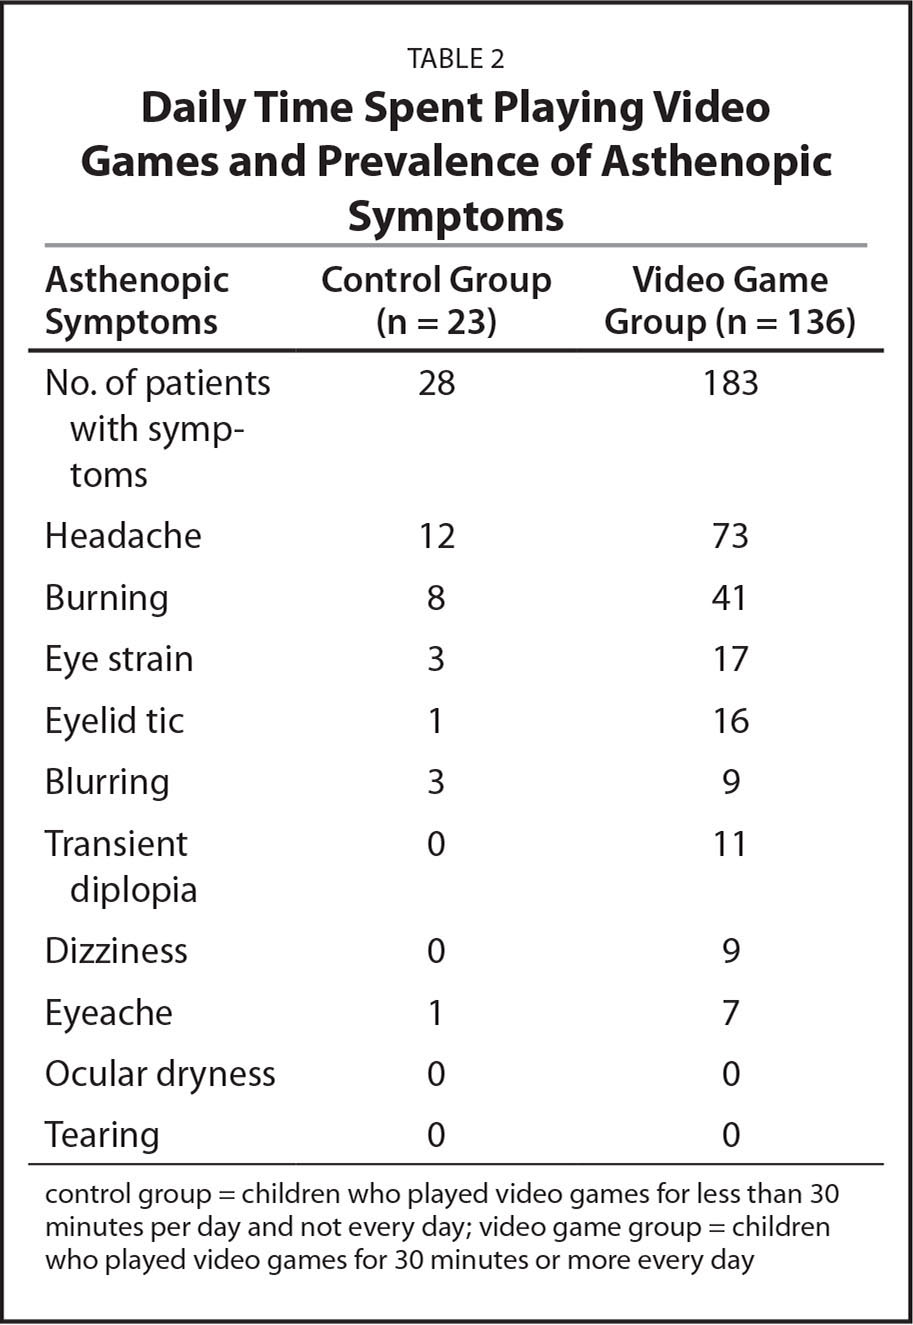 Daily Time Spent Playing Video Games and Prevalence of Asthenopic Symptoms